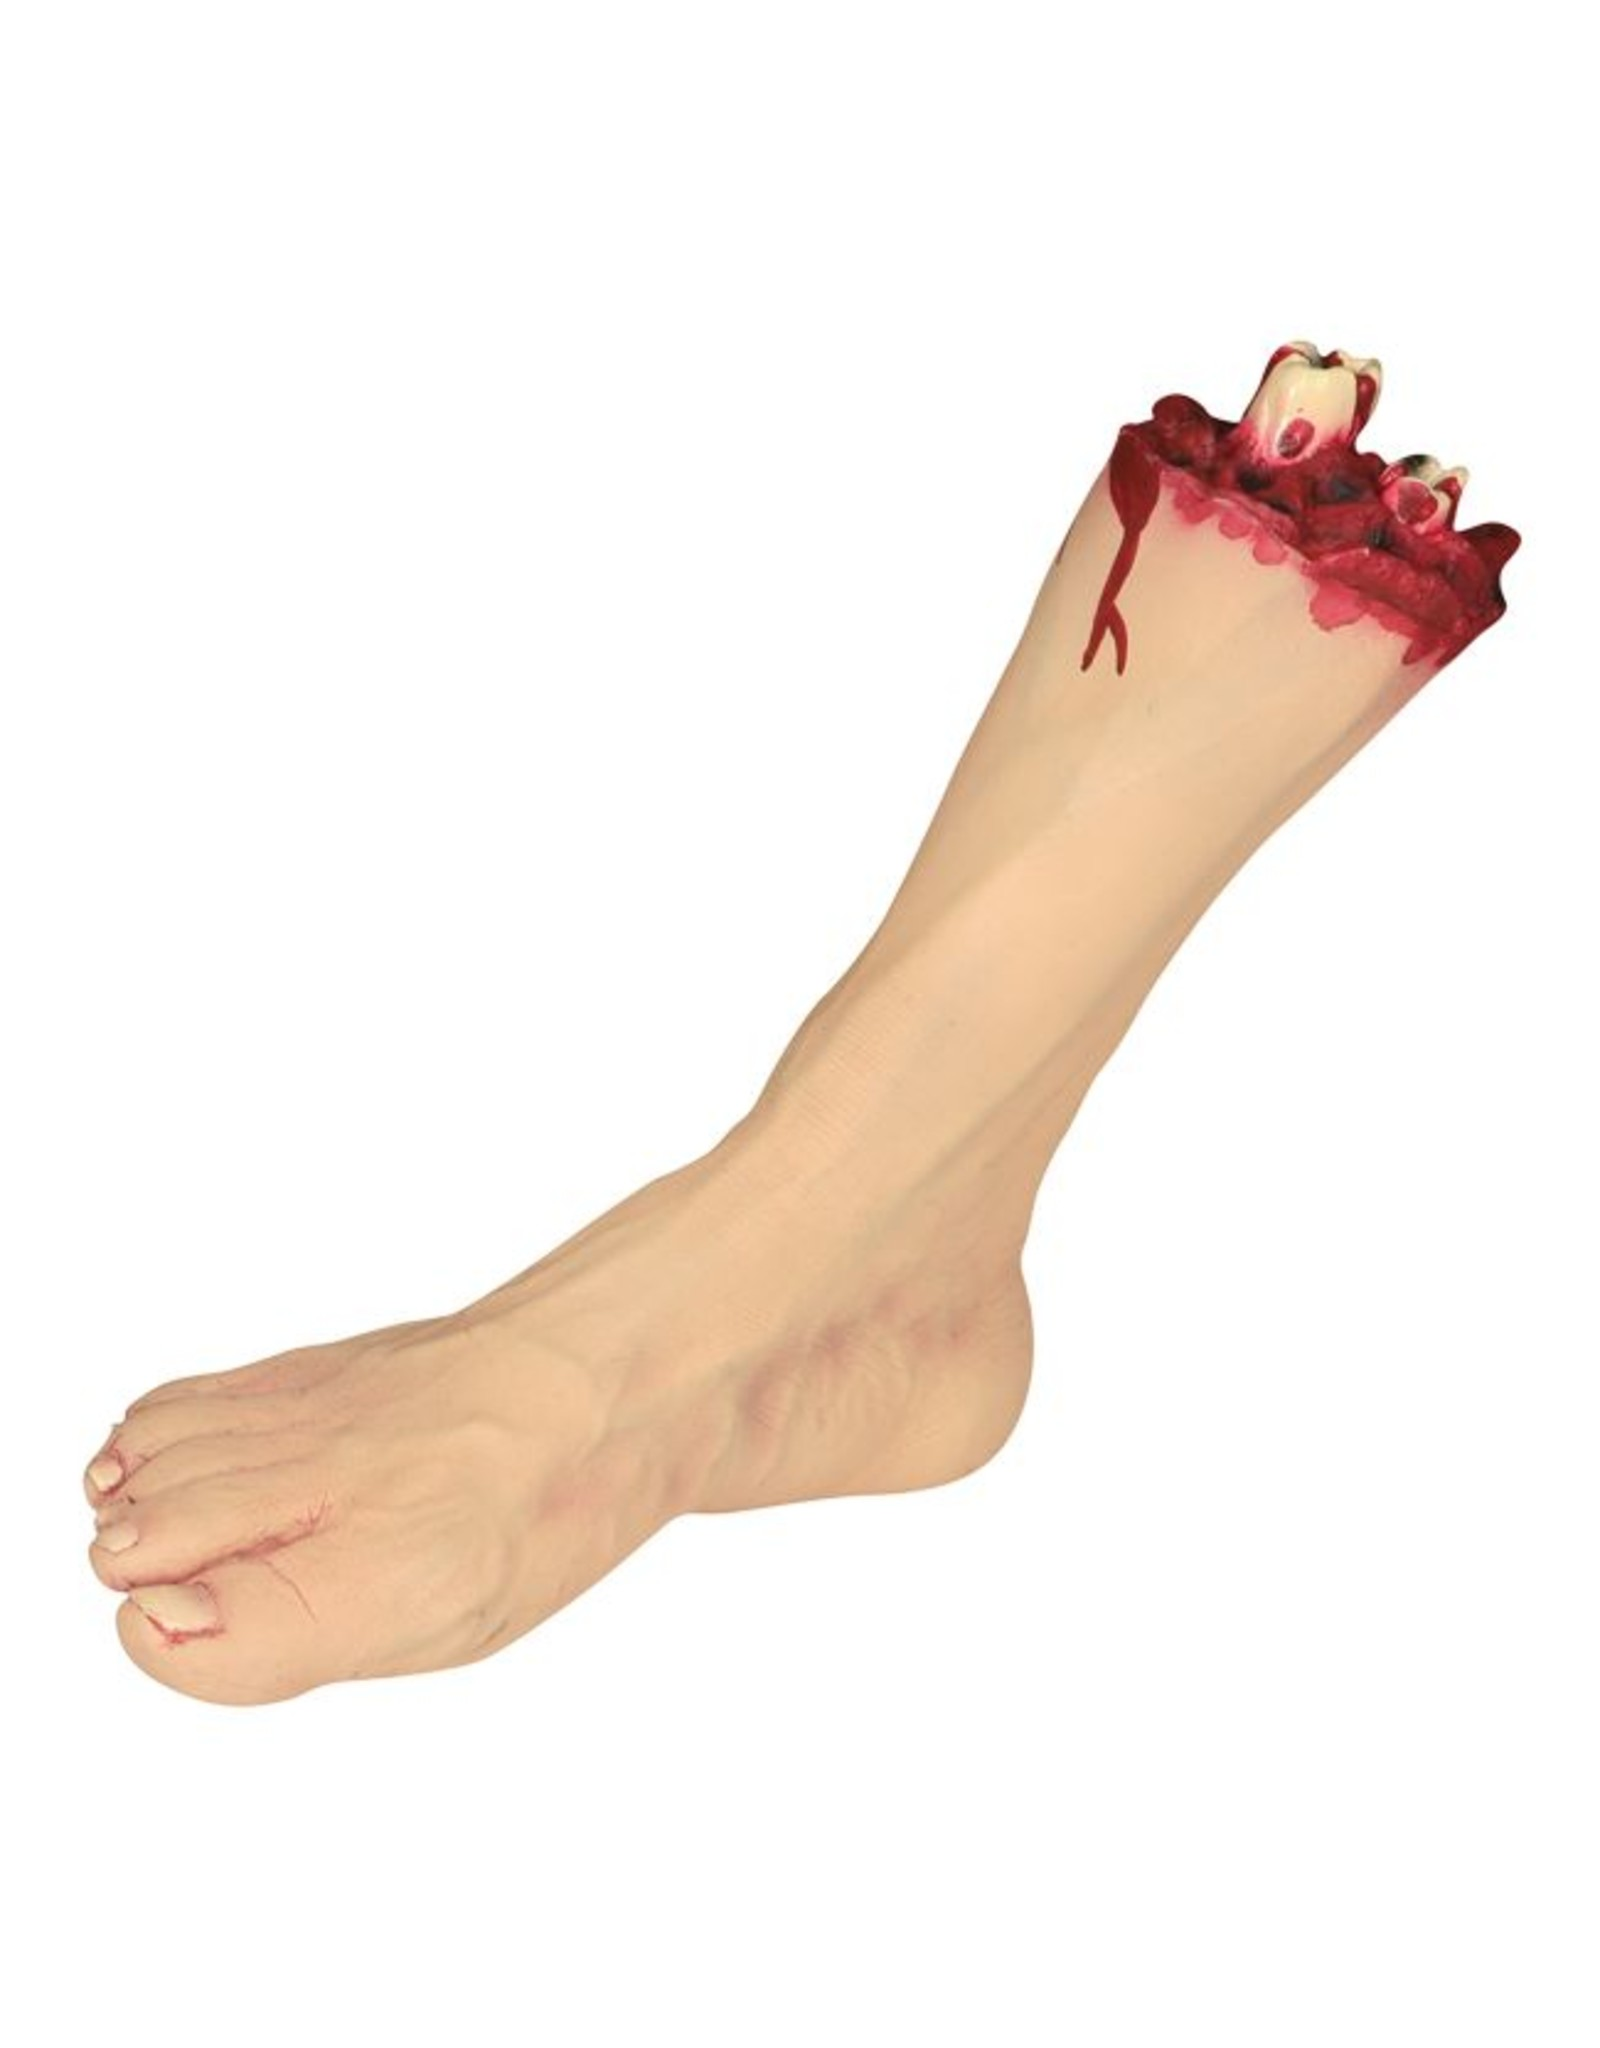 Seasons Severed Foot